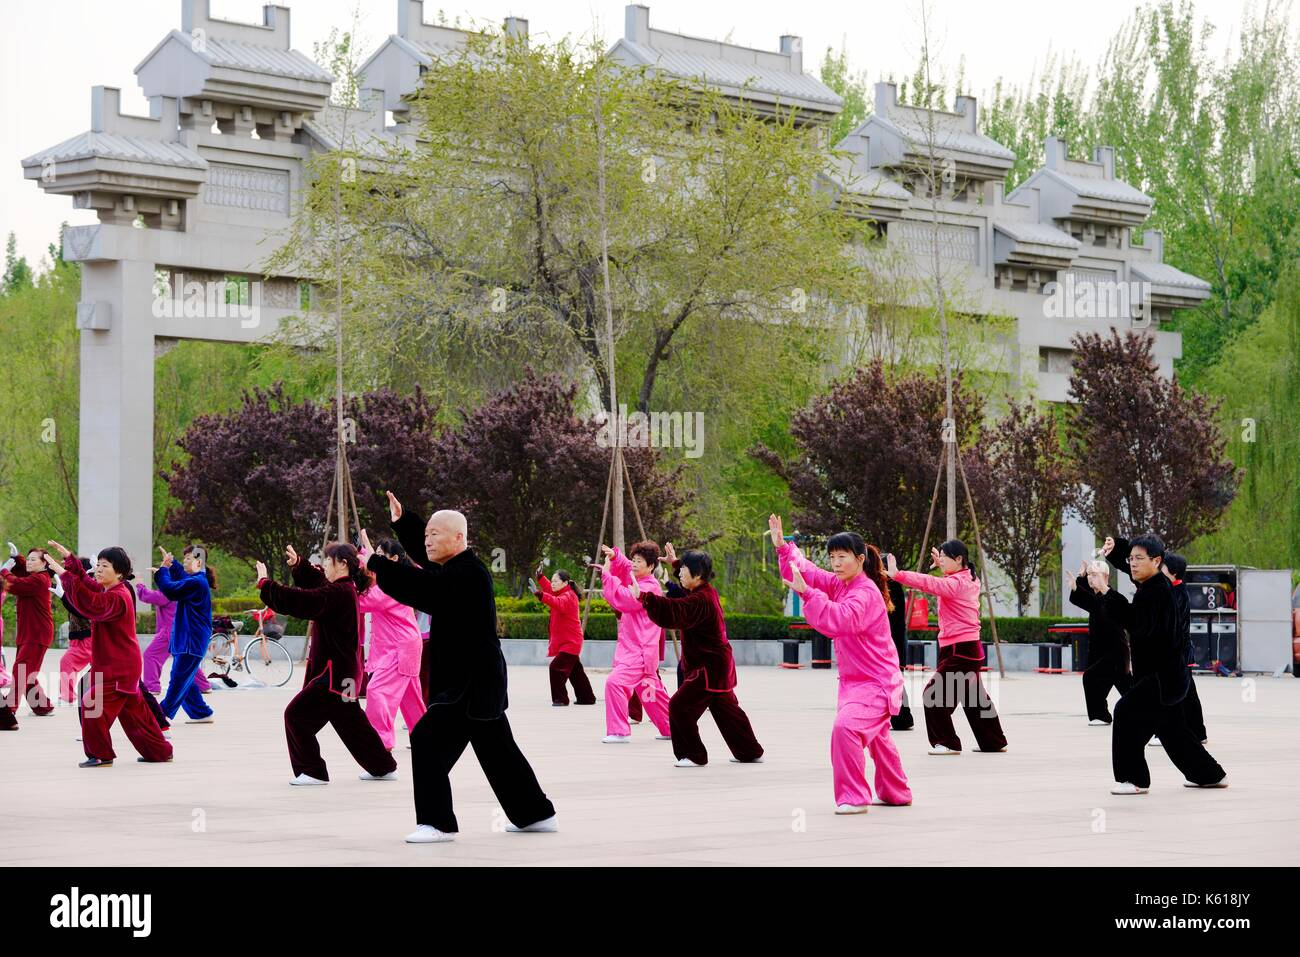 Dongzi Culture Park, Dezhou, Shandong, China. Local people take part in early morning T'ai chi Ch'uan health excersises - Stock Image